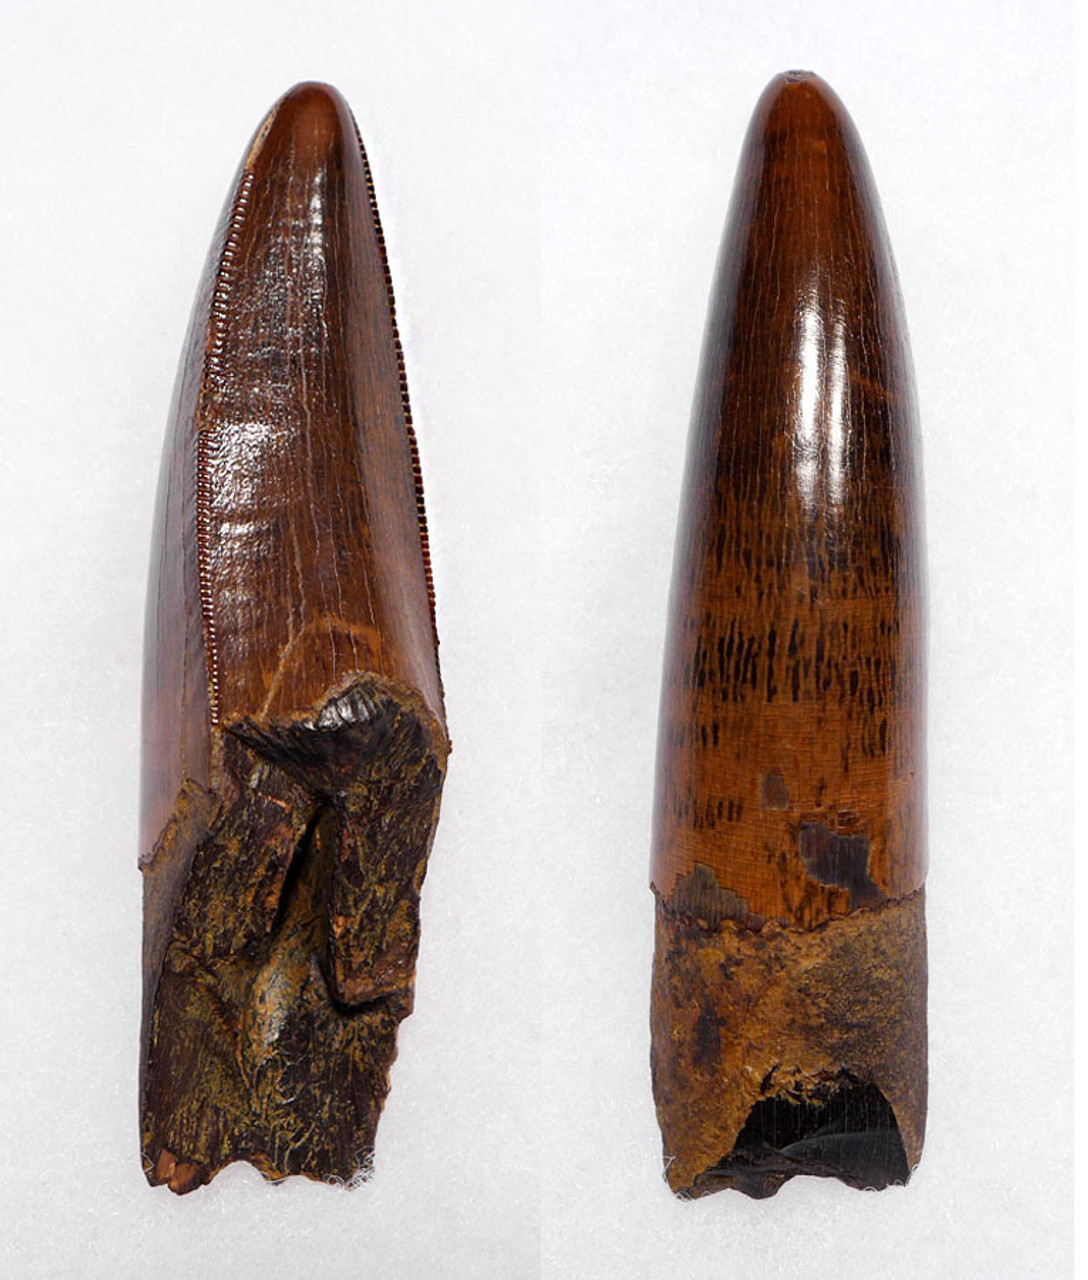 DT18-096 - ULTRA RARE 3.35 INCH LARGE INVESTMENT GRADE TYRANNOSAURUS REX TOOTH